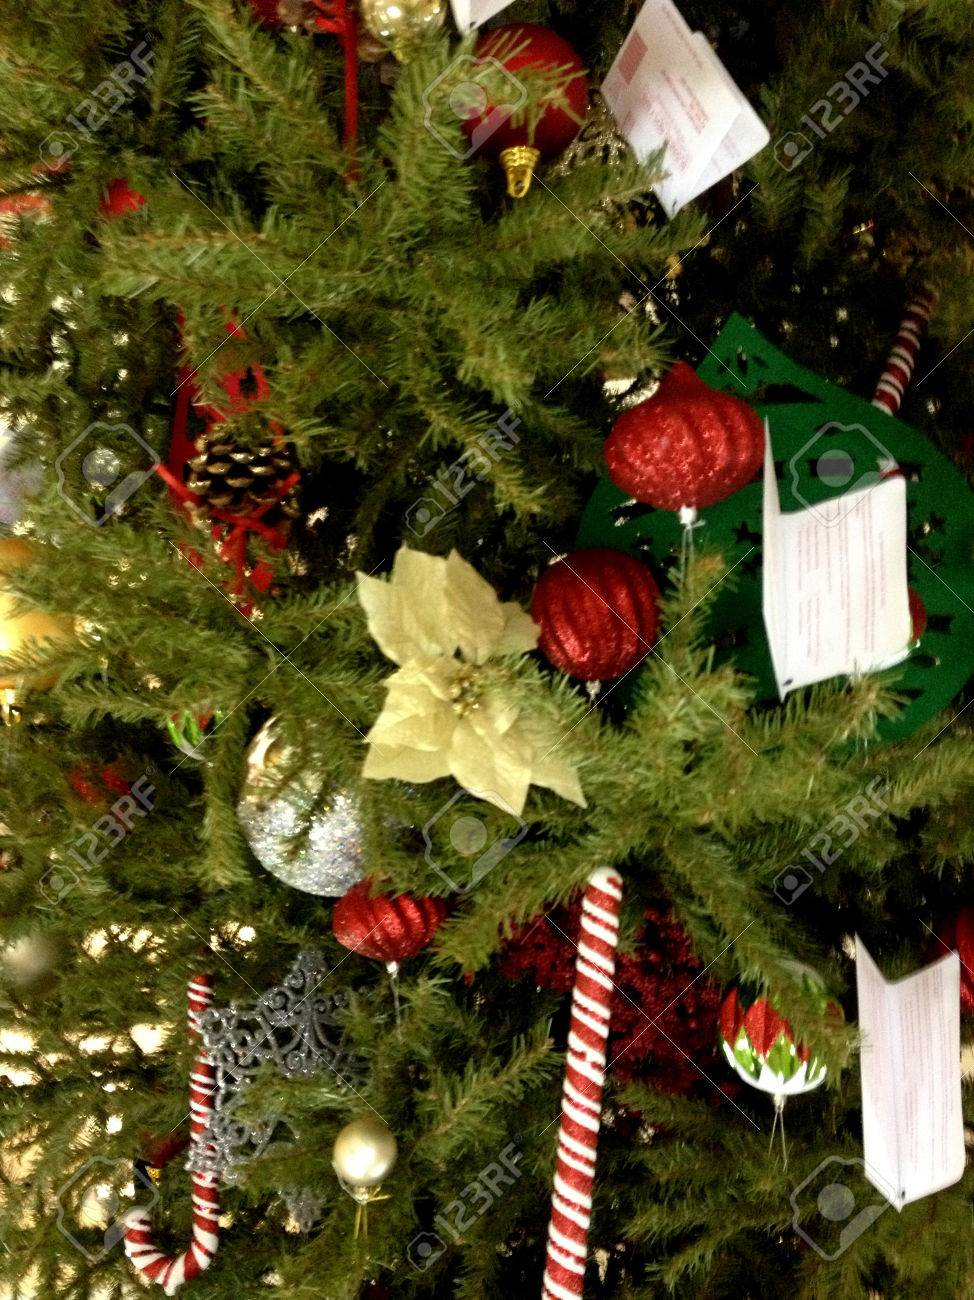 usa _macys decorated christmas tree with various christmas decoration items display - Decorated Christmas Trees For Sale